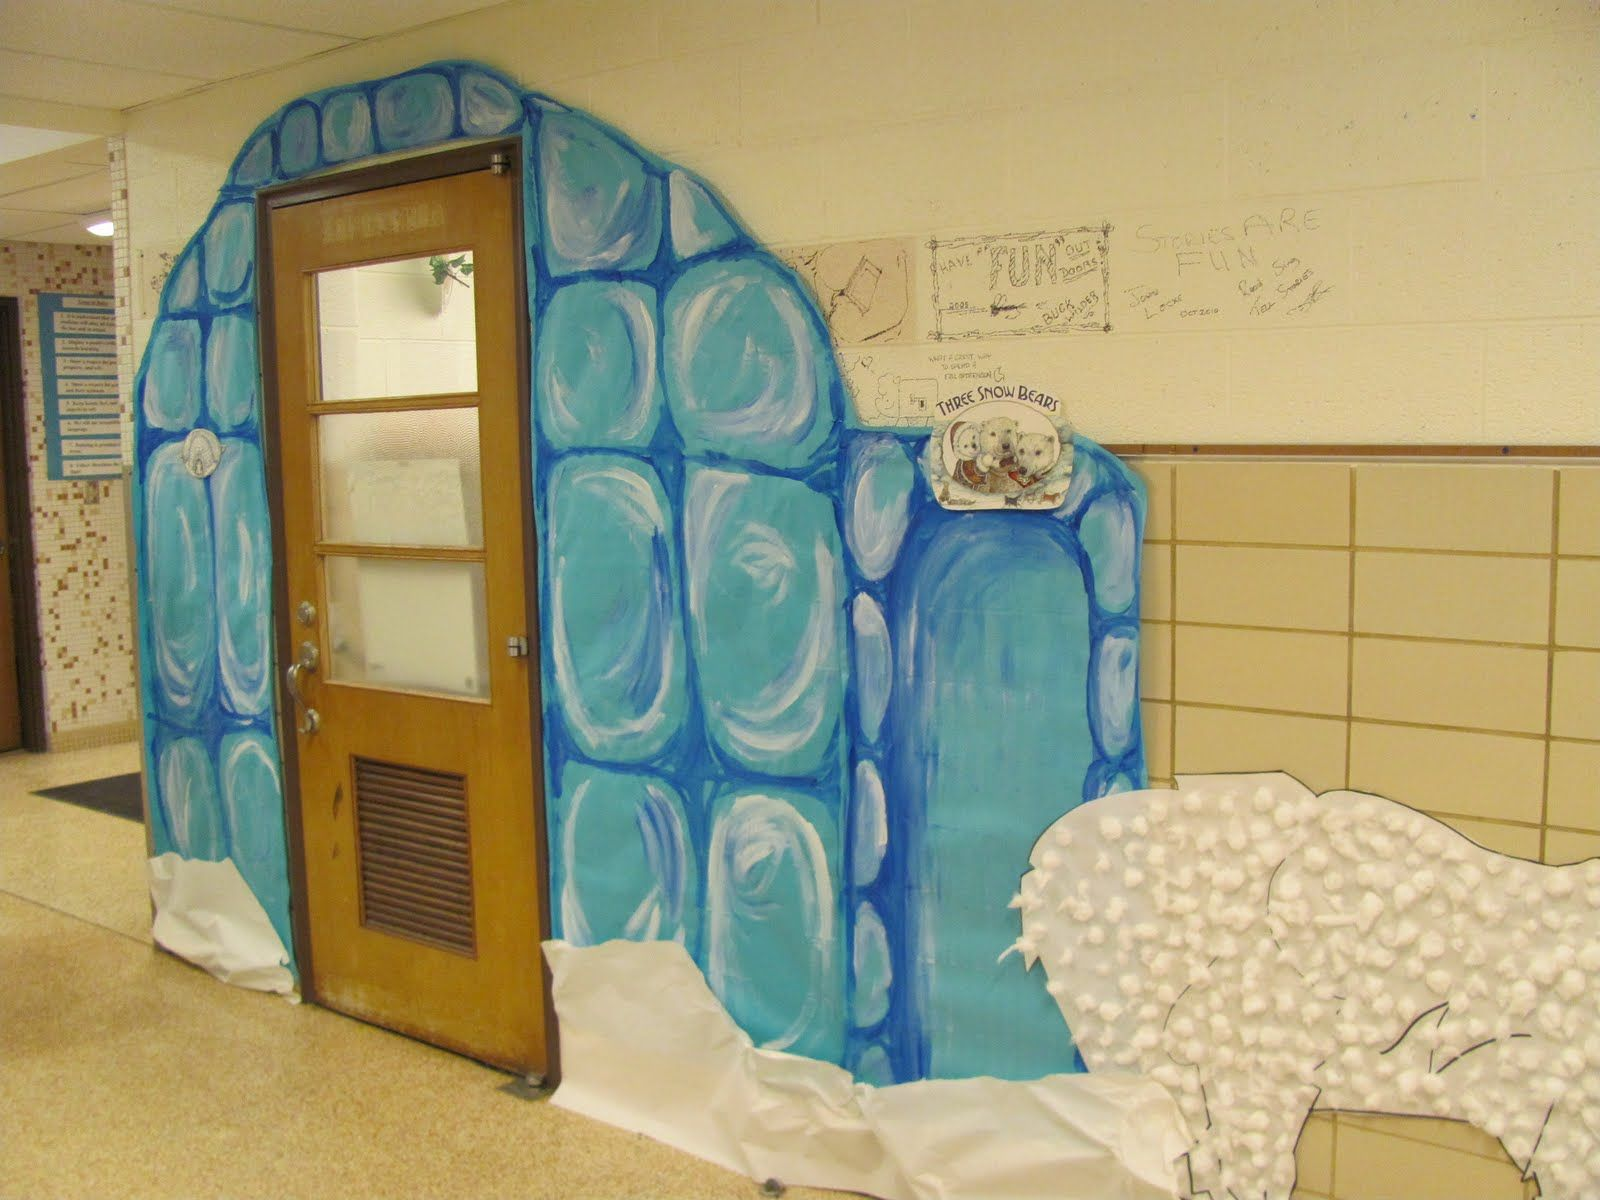 Doors Everest B An Artist School Everest Vbs Classroom Winter Theme